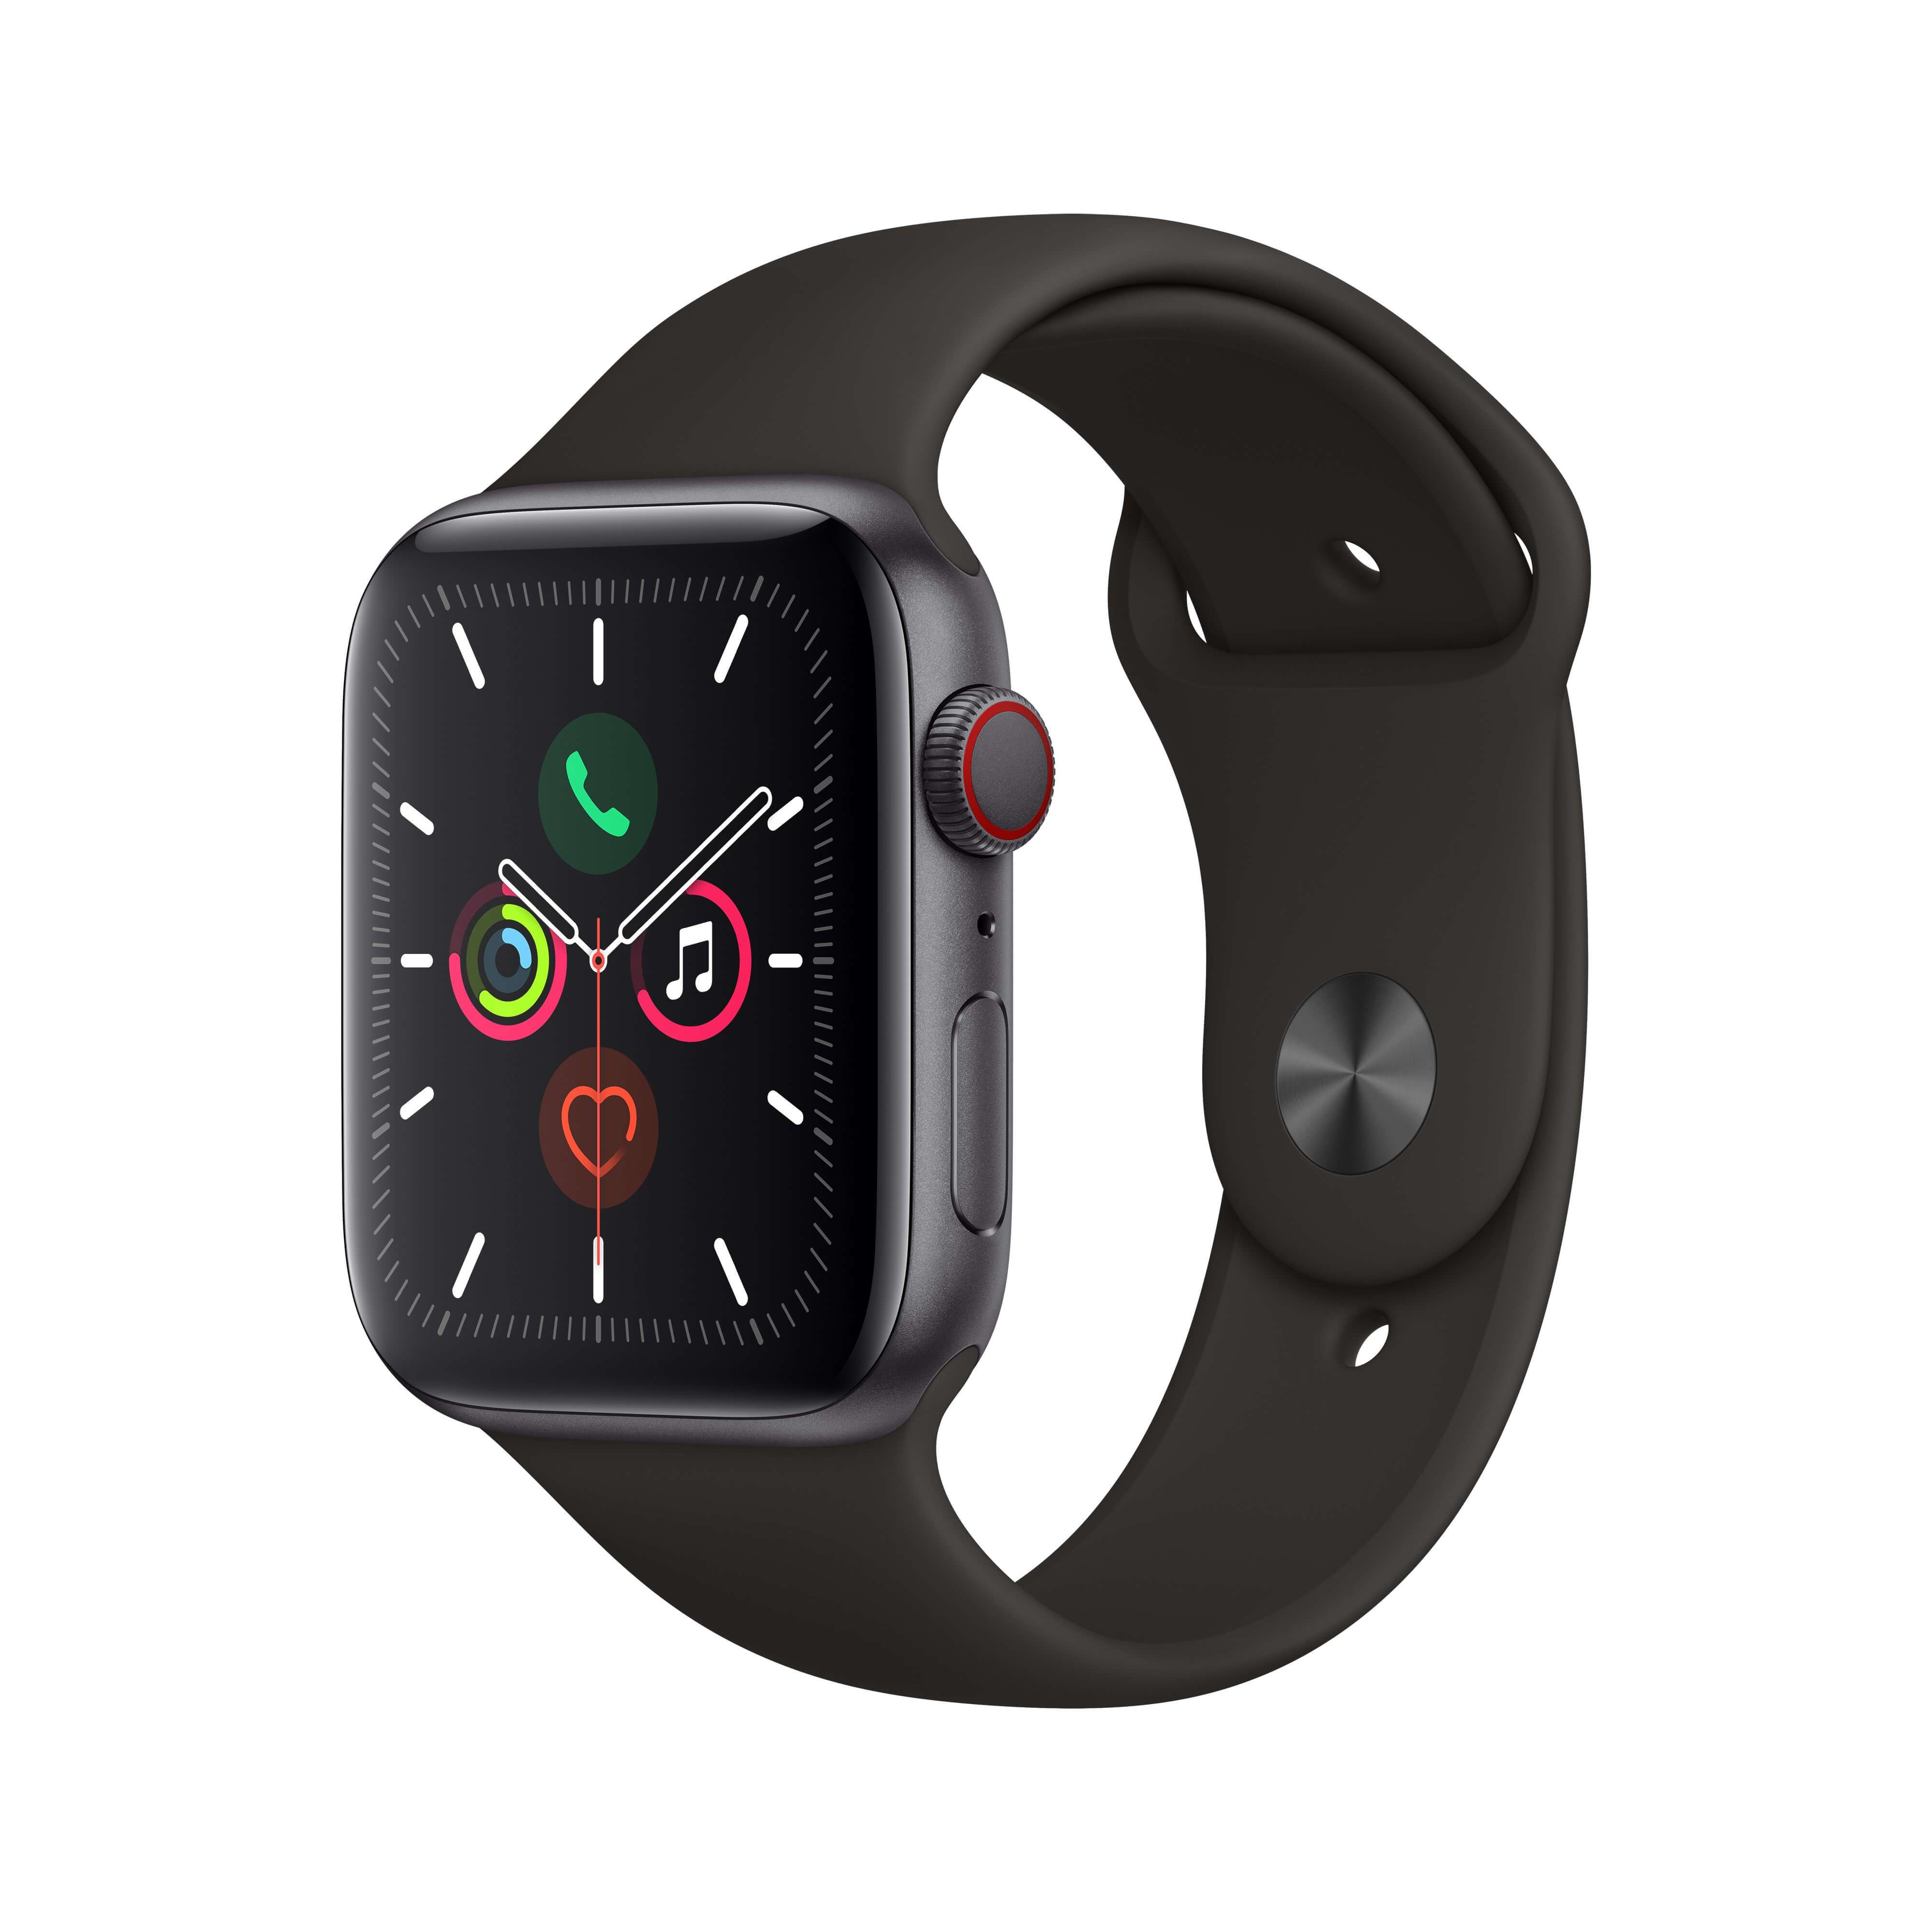 Apple Watch Series 5 GPS + Cellular 44mm Space Gray Aluminum Case with Black Sport Band (MWW12)